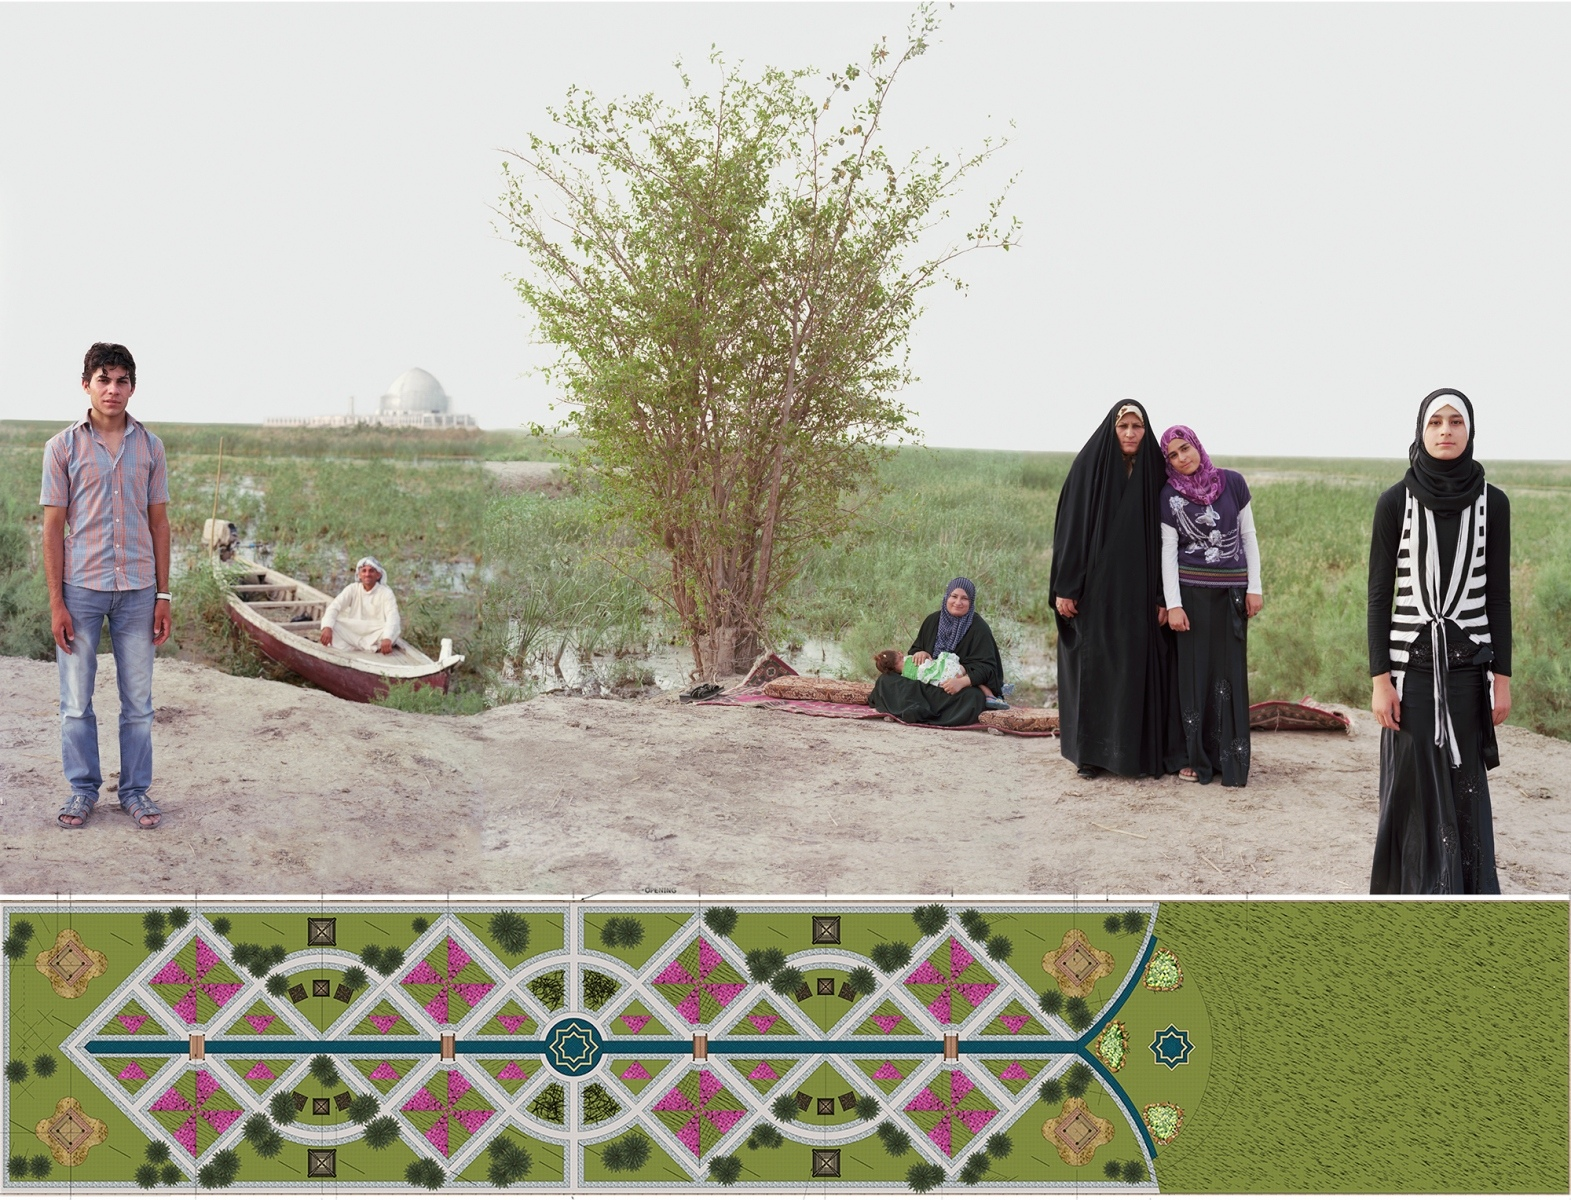 """ADAM AND EVE IN THE IRAQ MARSHES, NEAR THE POSSIBLE HISTORIC SITE OF THE GARDEN OF EDEN 2011-2012. 34 x 59.83, linen (with border 41 x 66"""")"""